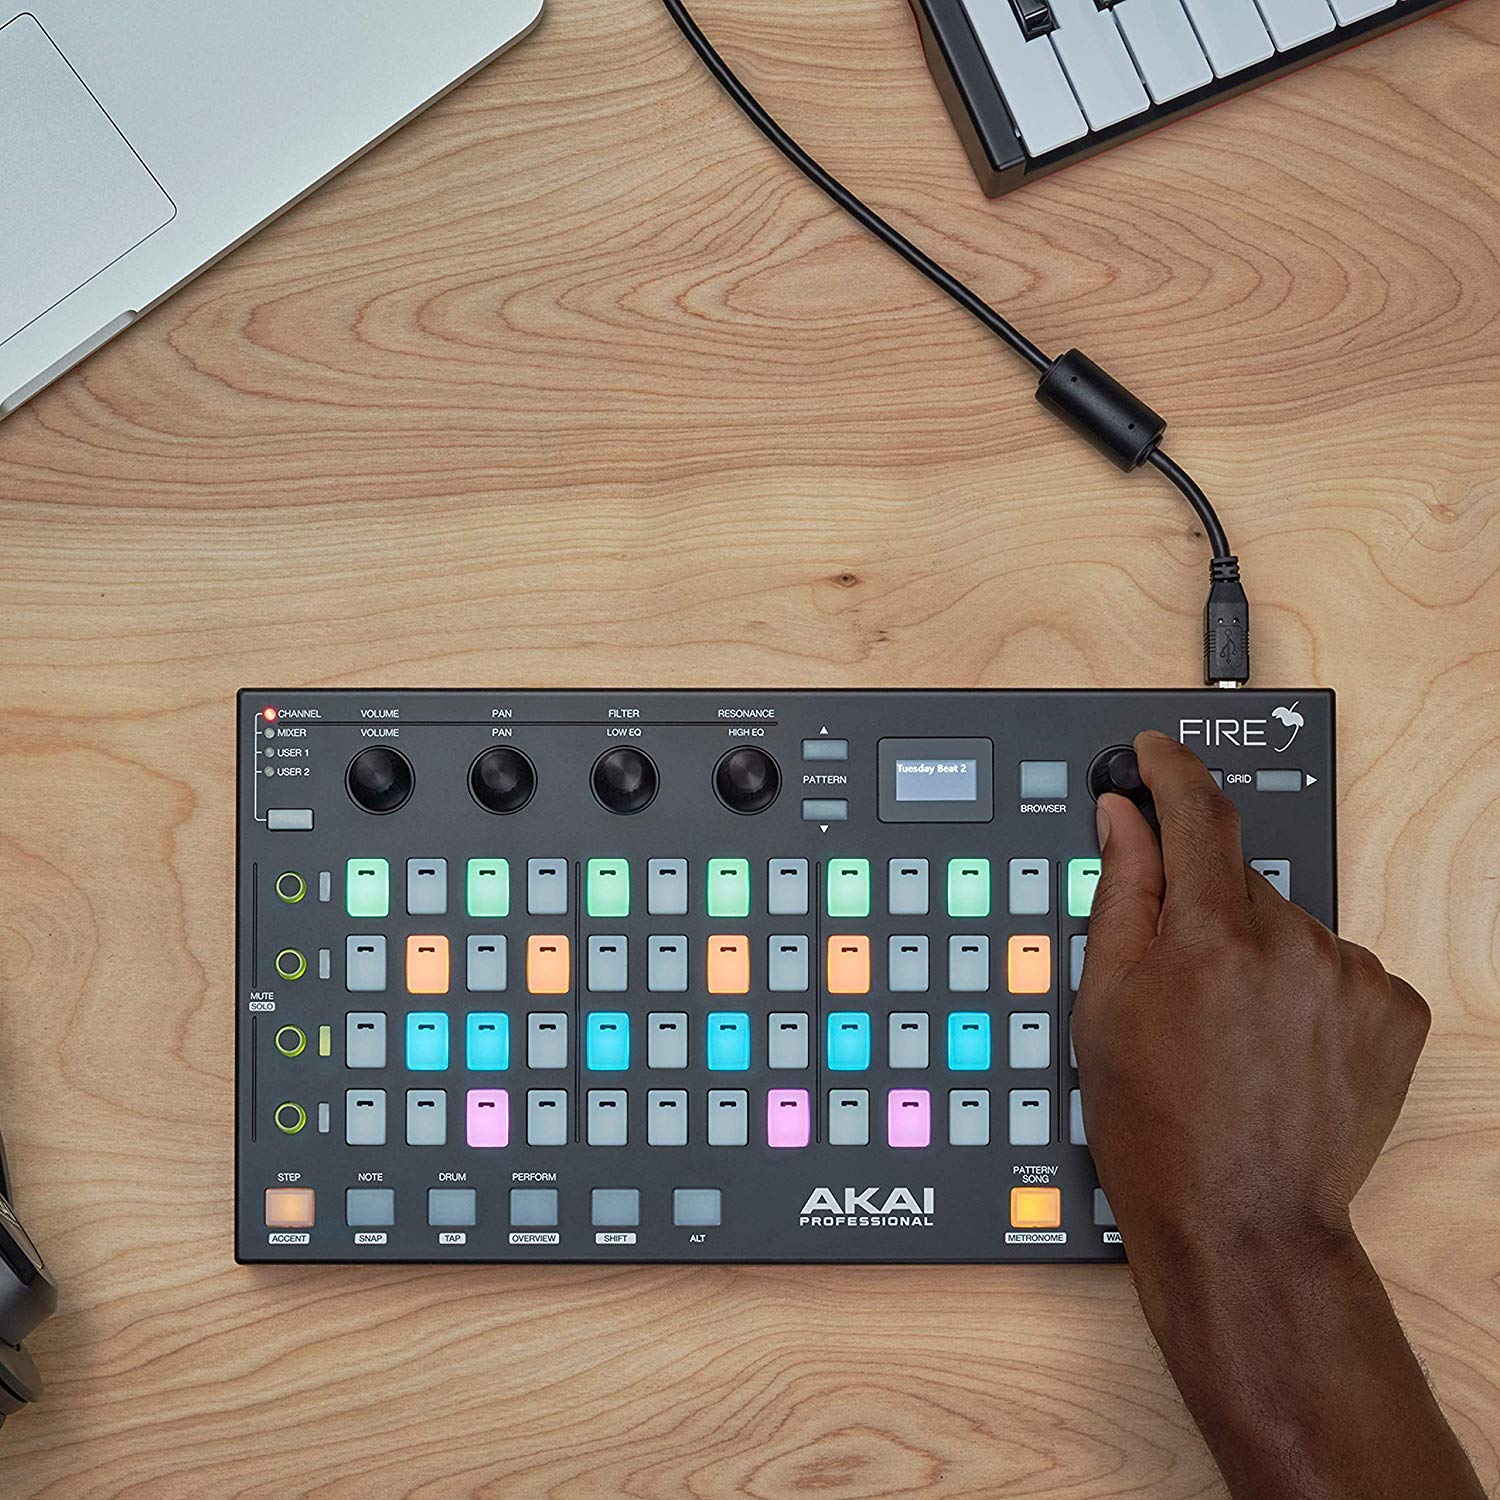 Akai Professional Fire | Performance Controller for FL Studio With 4 x 16 Velocity-Sensitive RGB Clip Matrix, OLED Display and FL Studio Fruity Fire Edition Included by Akai Professional (Image #3)